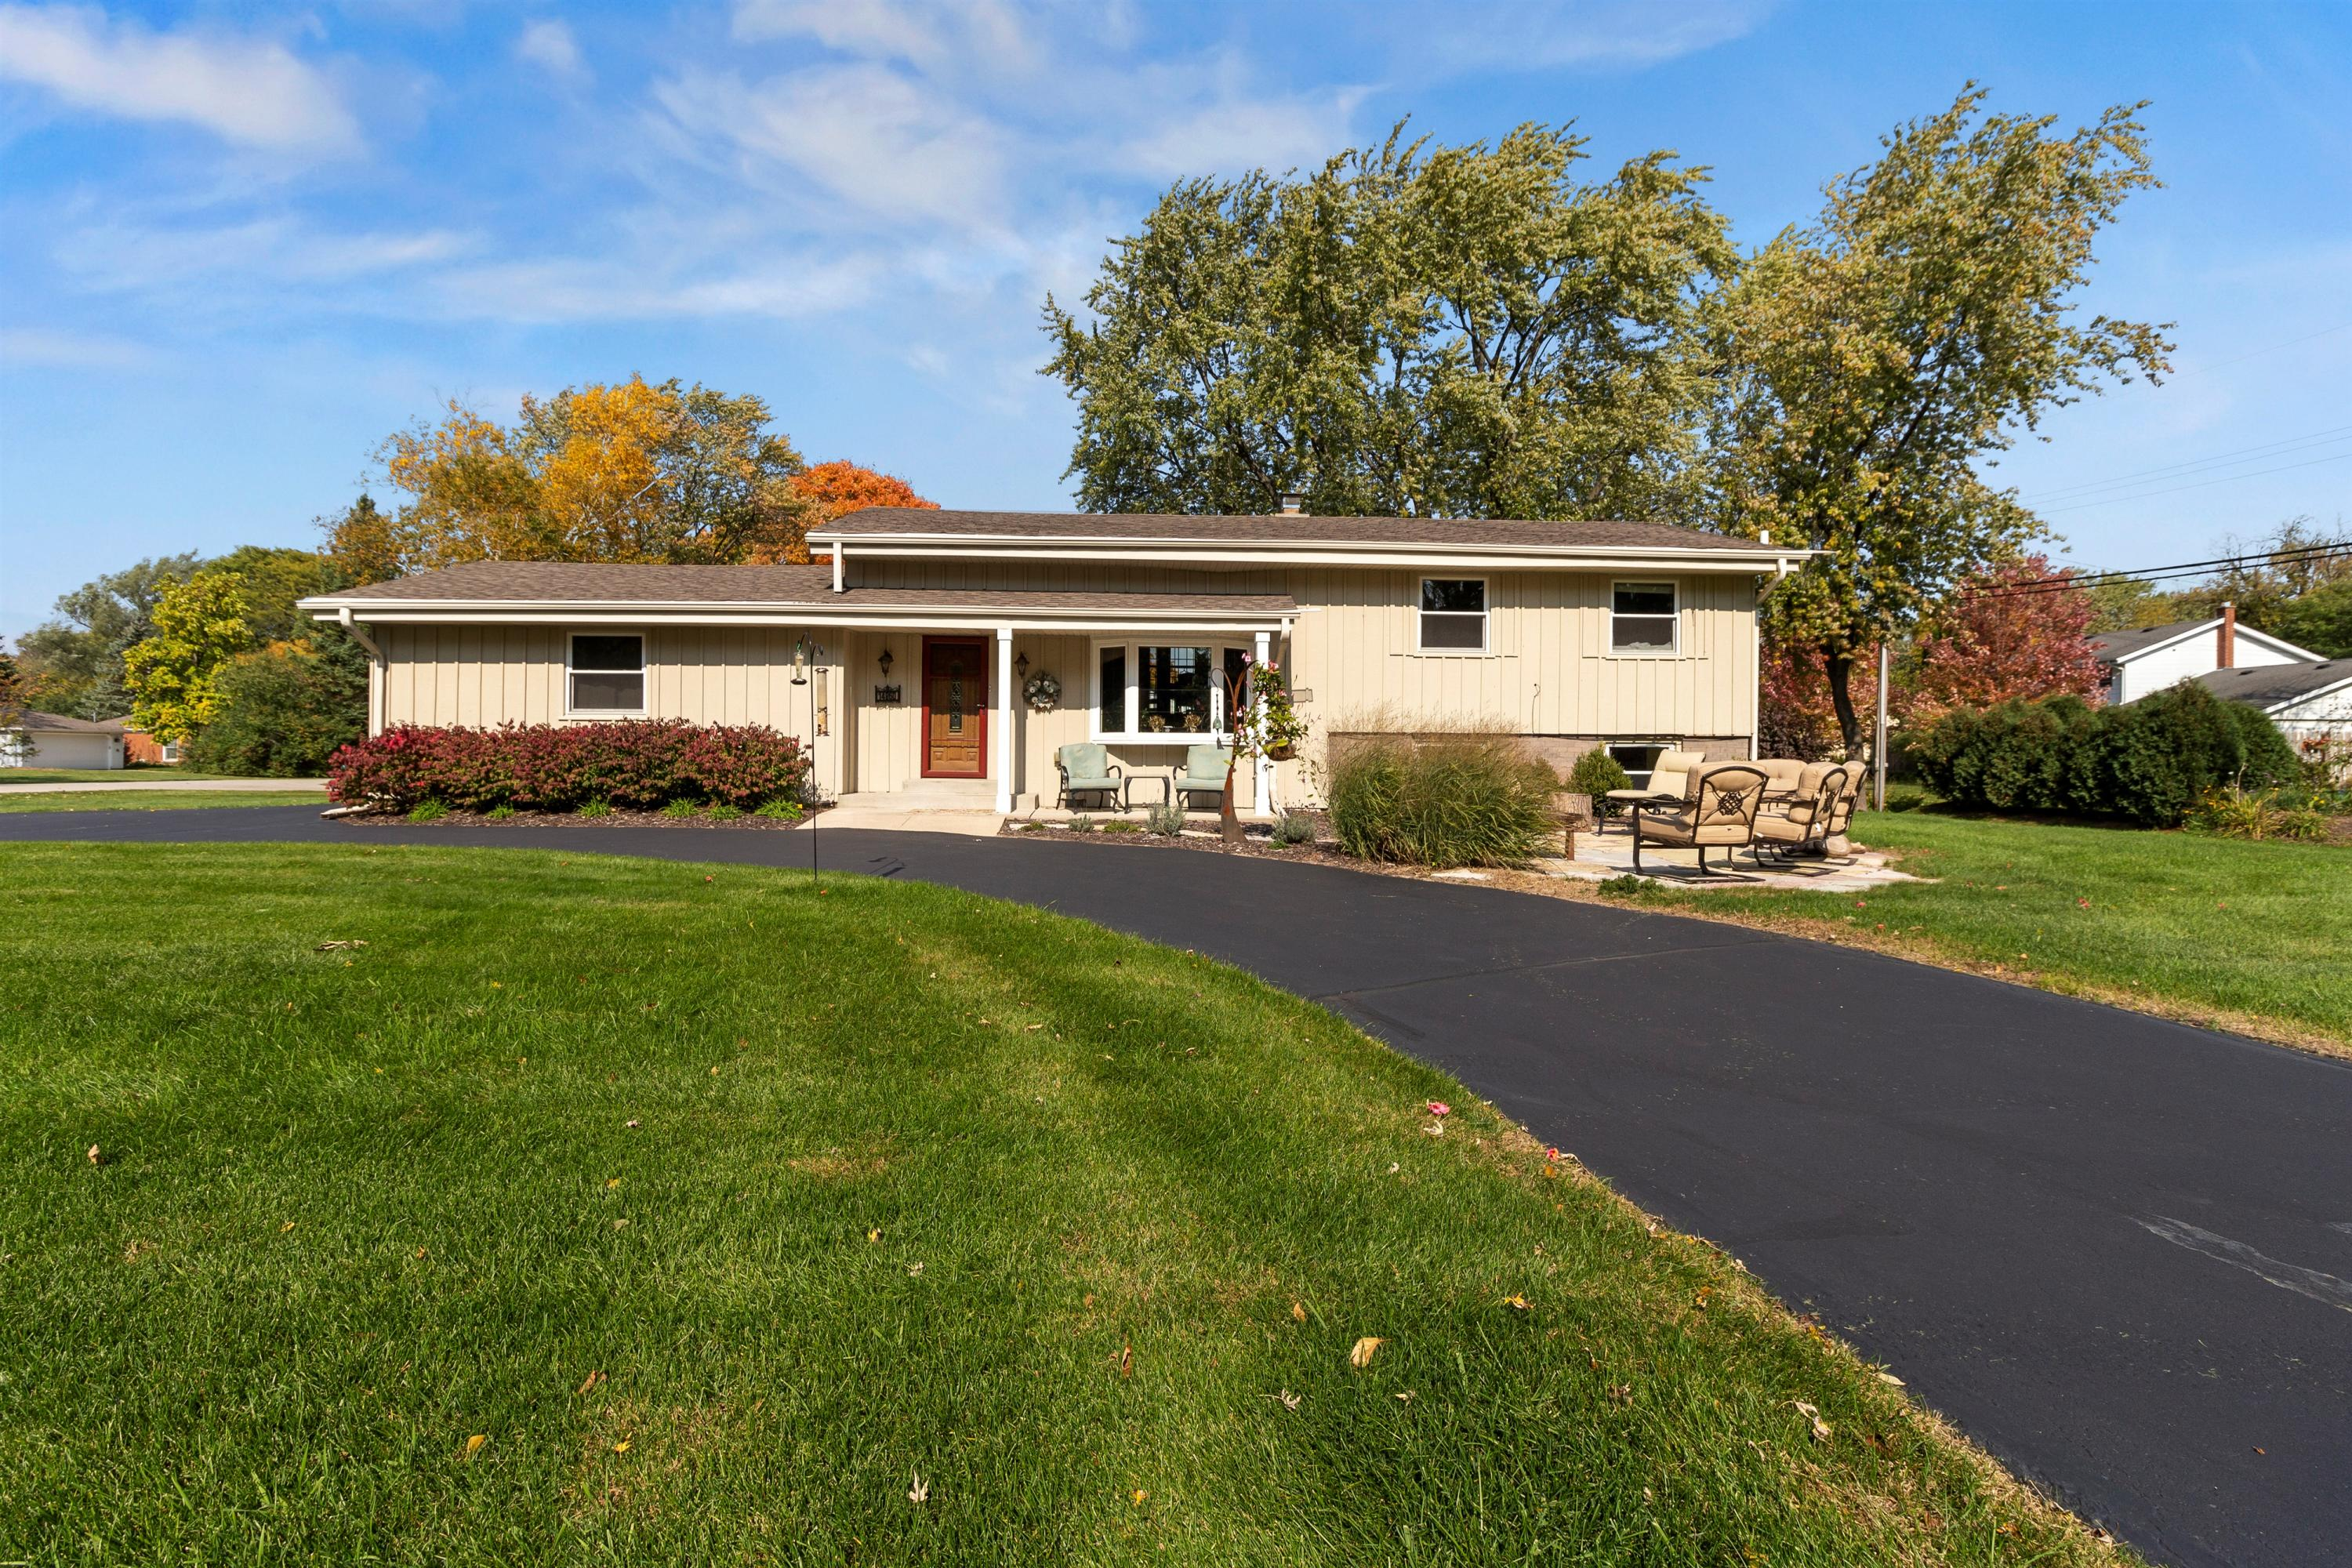 14860 Mt Vernon Ave, Brookfield, Wisconsin 53005, 4 Bedrooms Bedrooms, ,3 BathroomsBathrooms,Single-Family,For Sale,Mt Vernon Ave,1714189